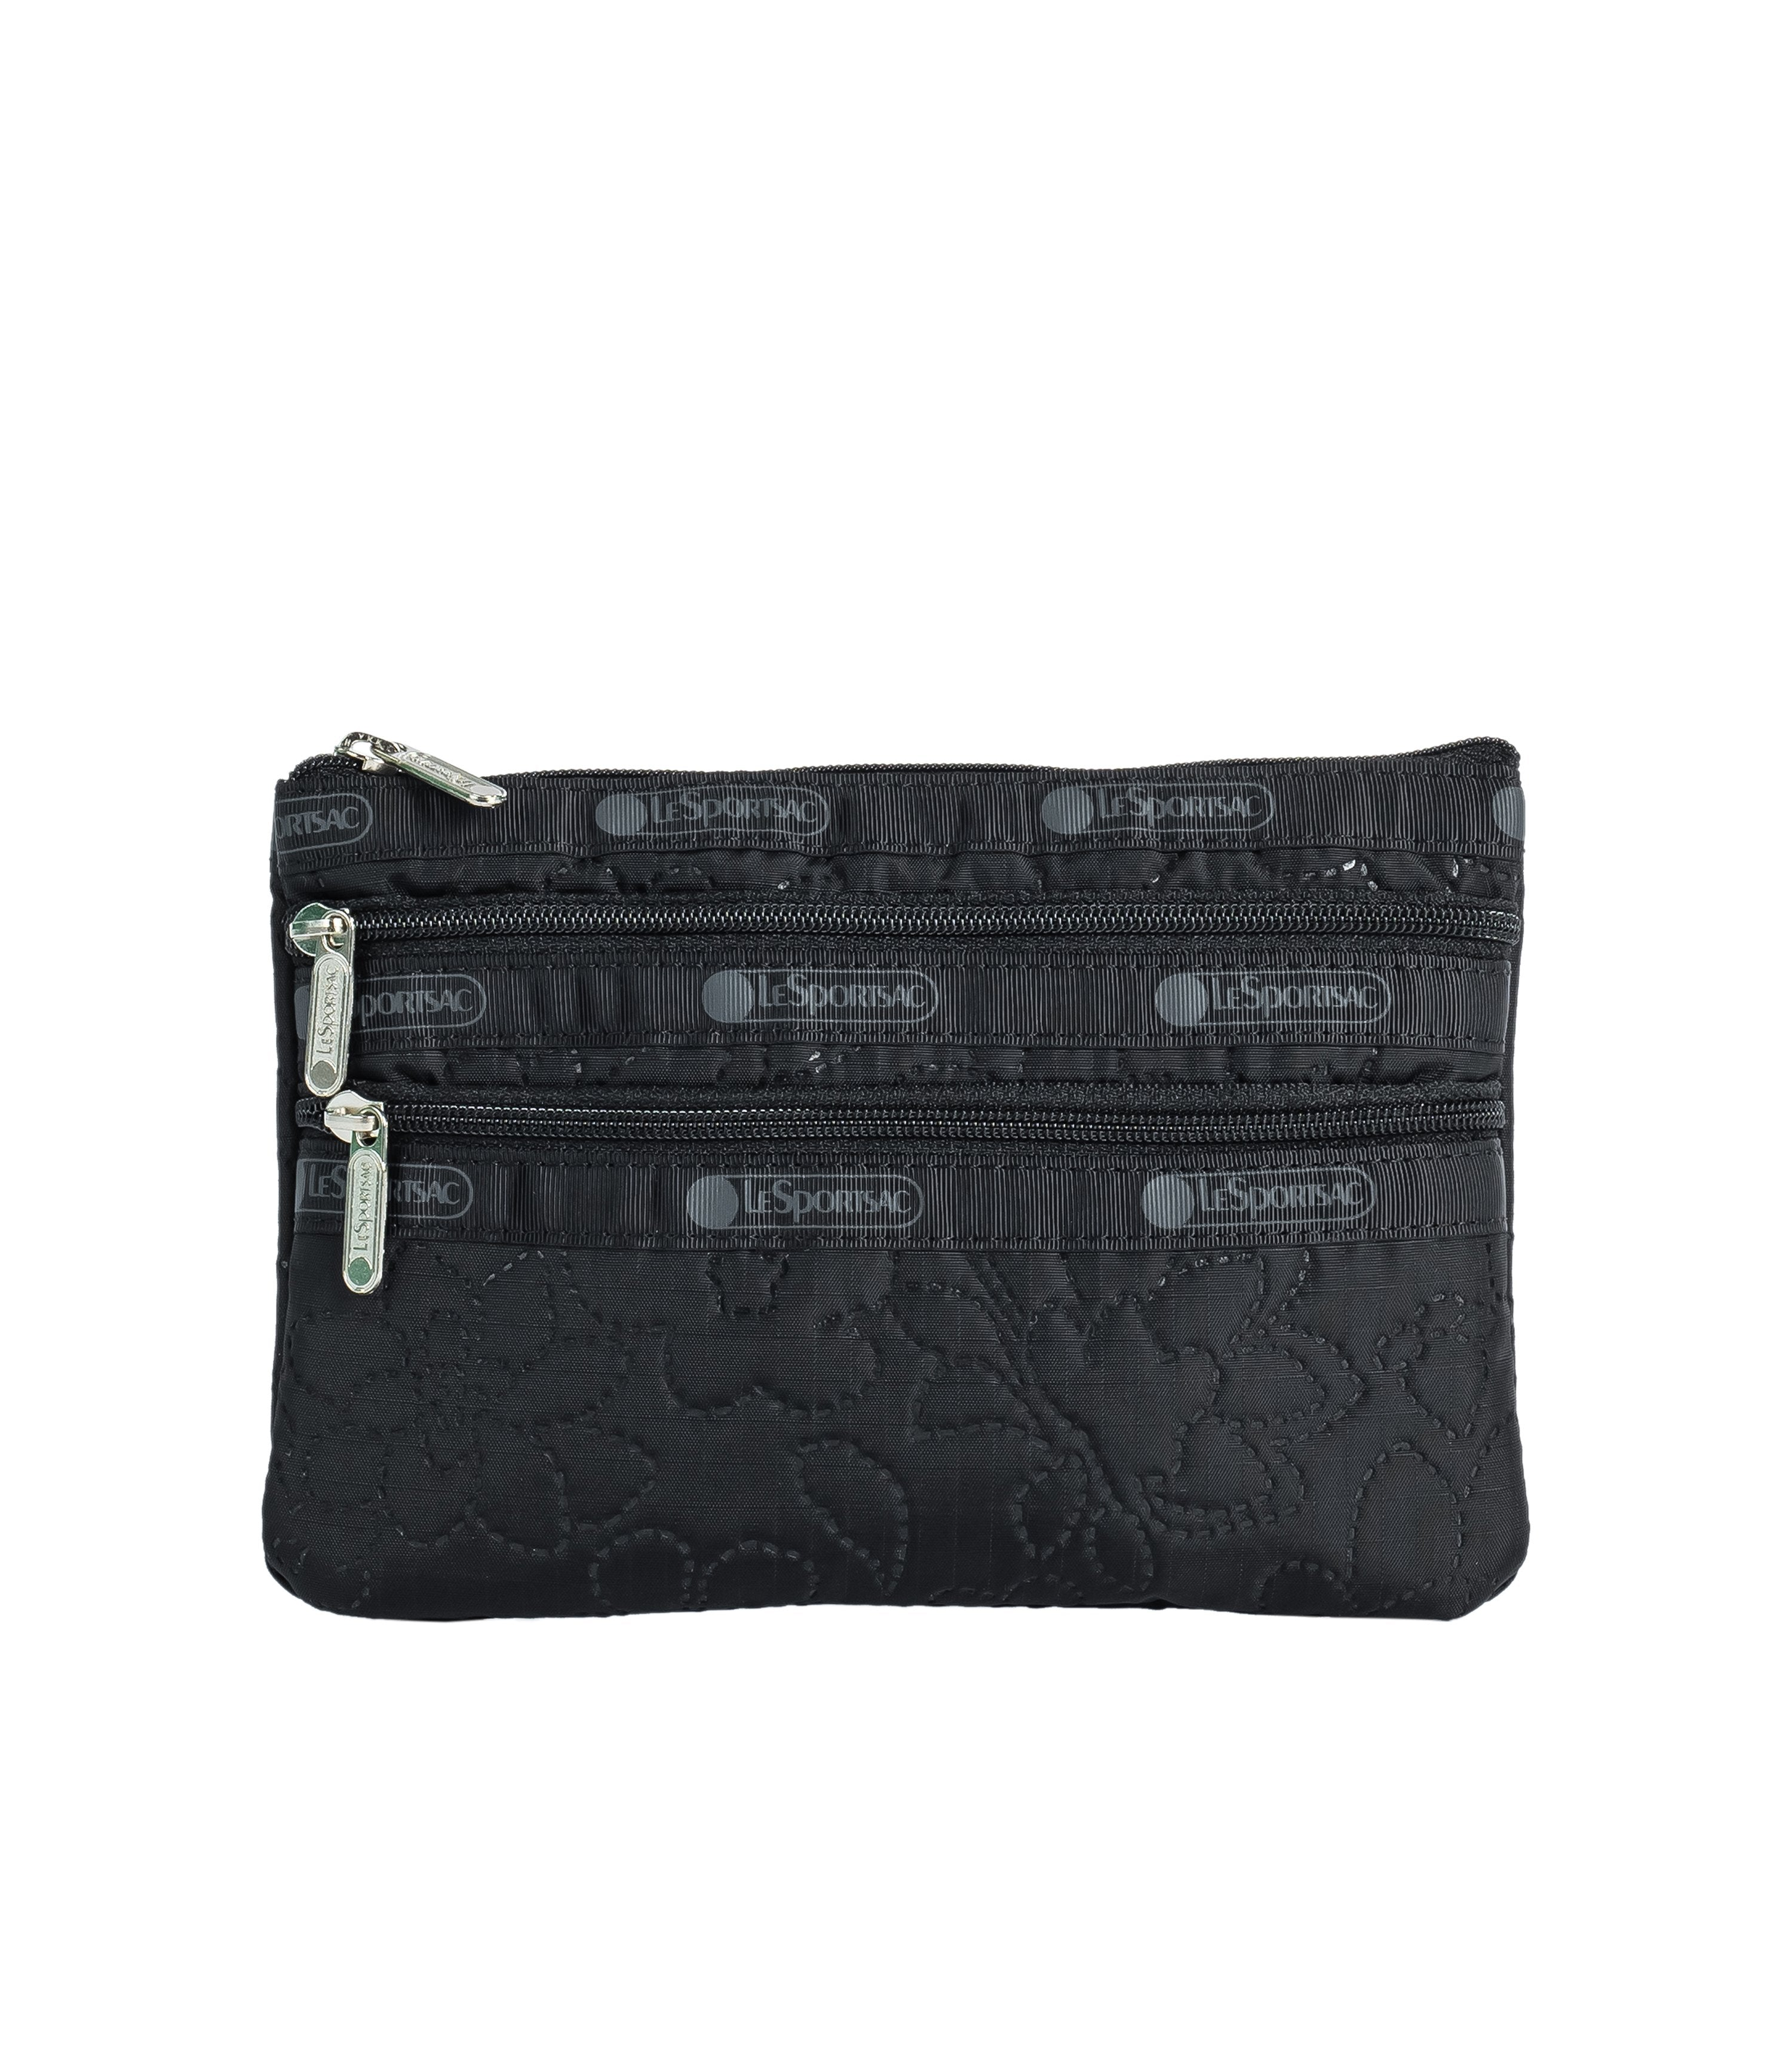 LeSportsac - Accessories - 3-Zip Cosmetic - Dahlia Deboss Black